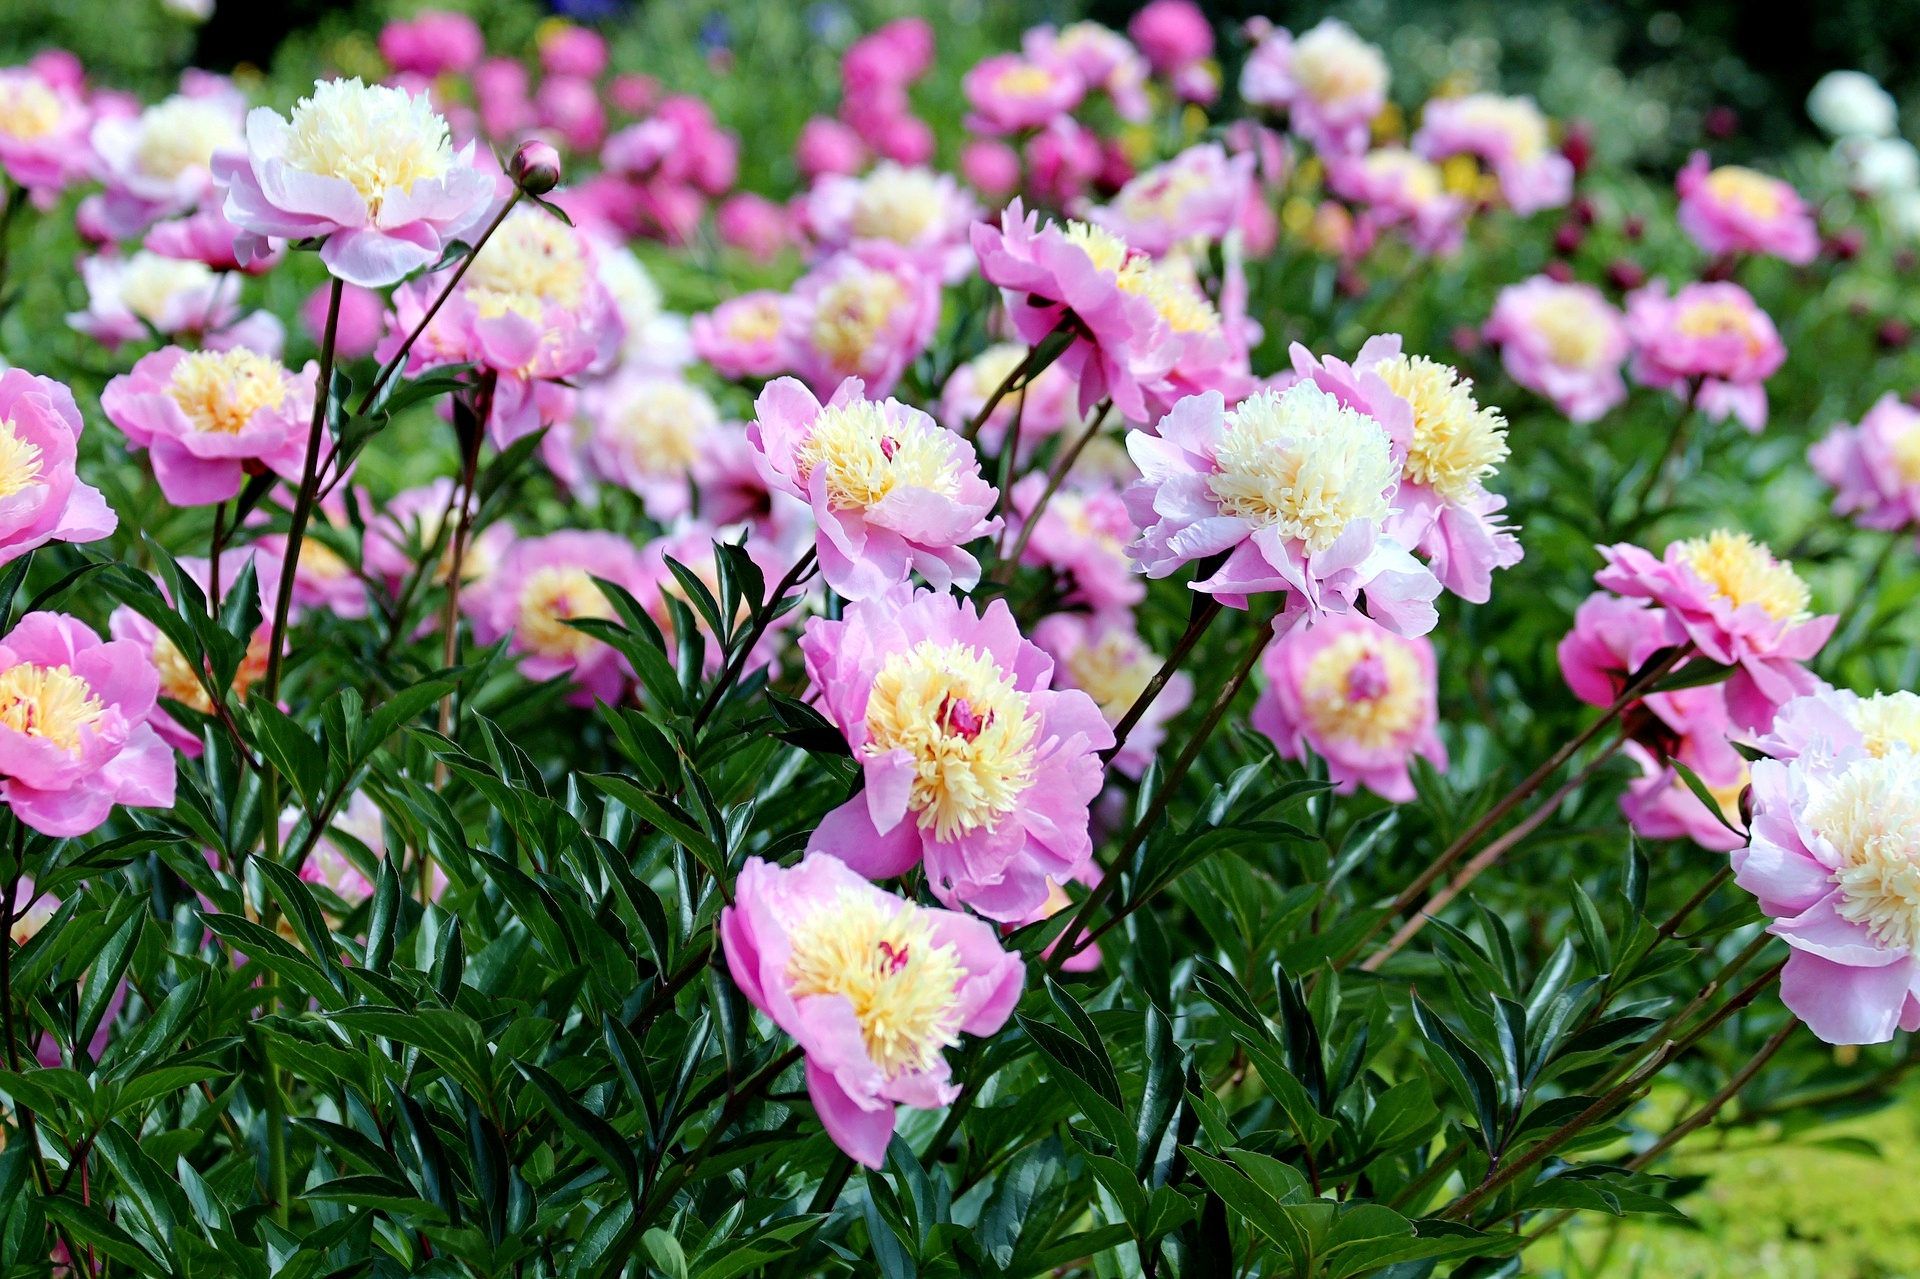 Peonies: Planting, Growing, and Caring for Peony Flowers | The Old ...